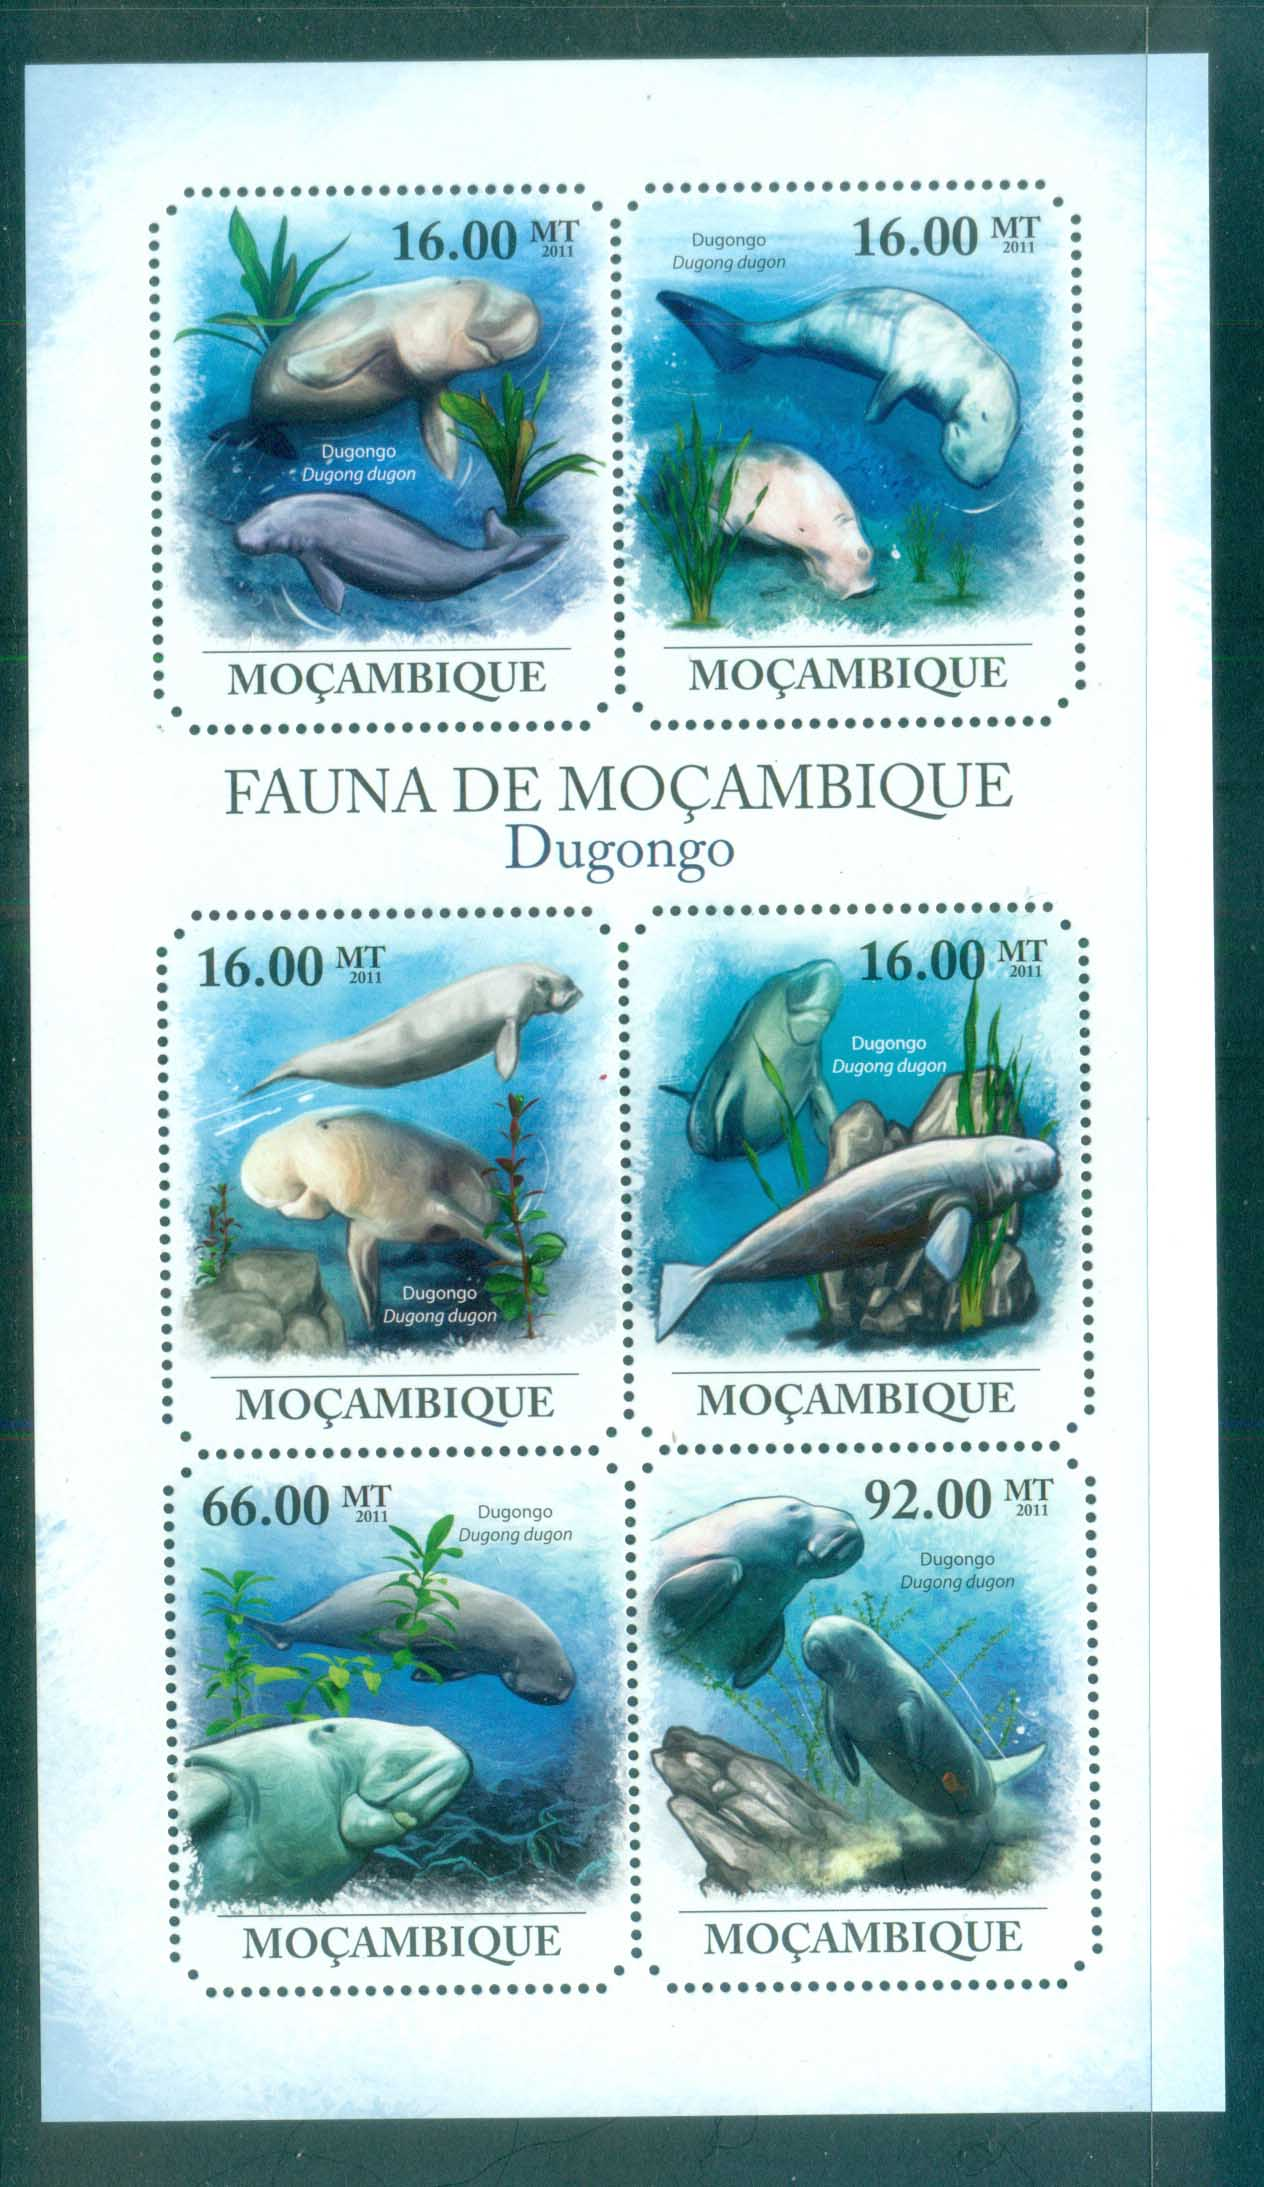 Mozambique 2011 Marine Life,Dugong, Manatee MS MUH MOZ11418a